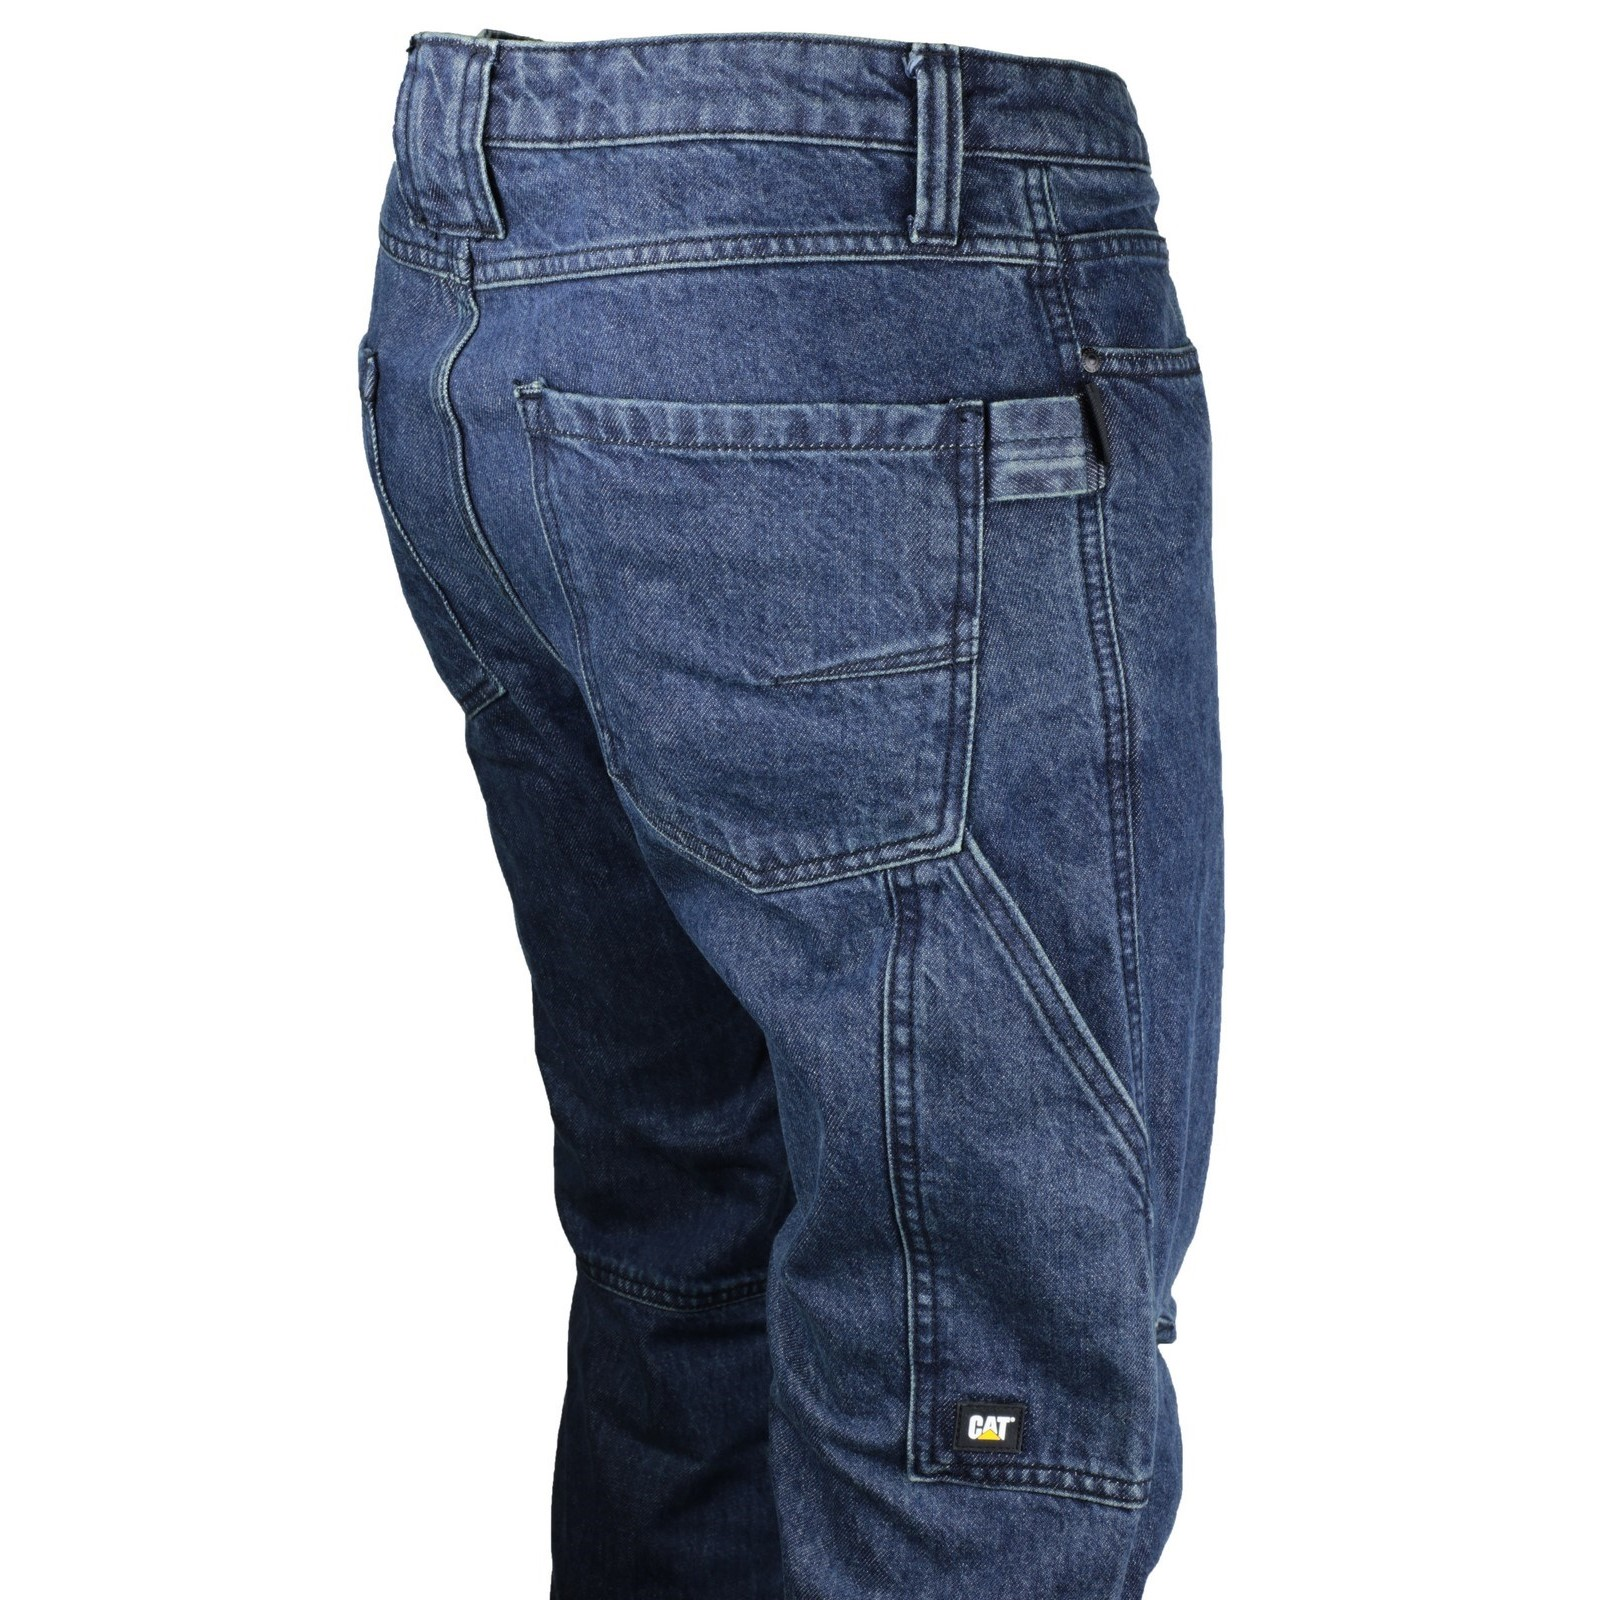 caterpillar herren jeans jeanshose arbeitshose taschen denim hose arbeitsjeans ebay. Black Bedroom Furniture Sets. Home Design Ideas